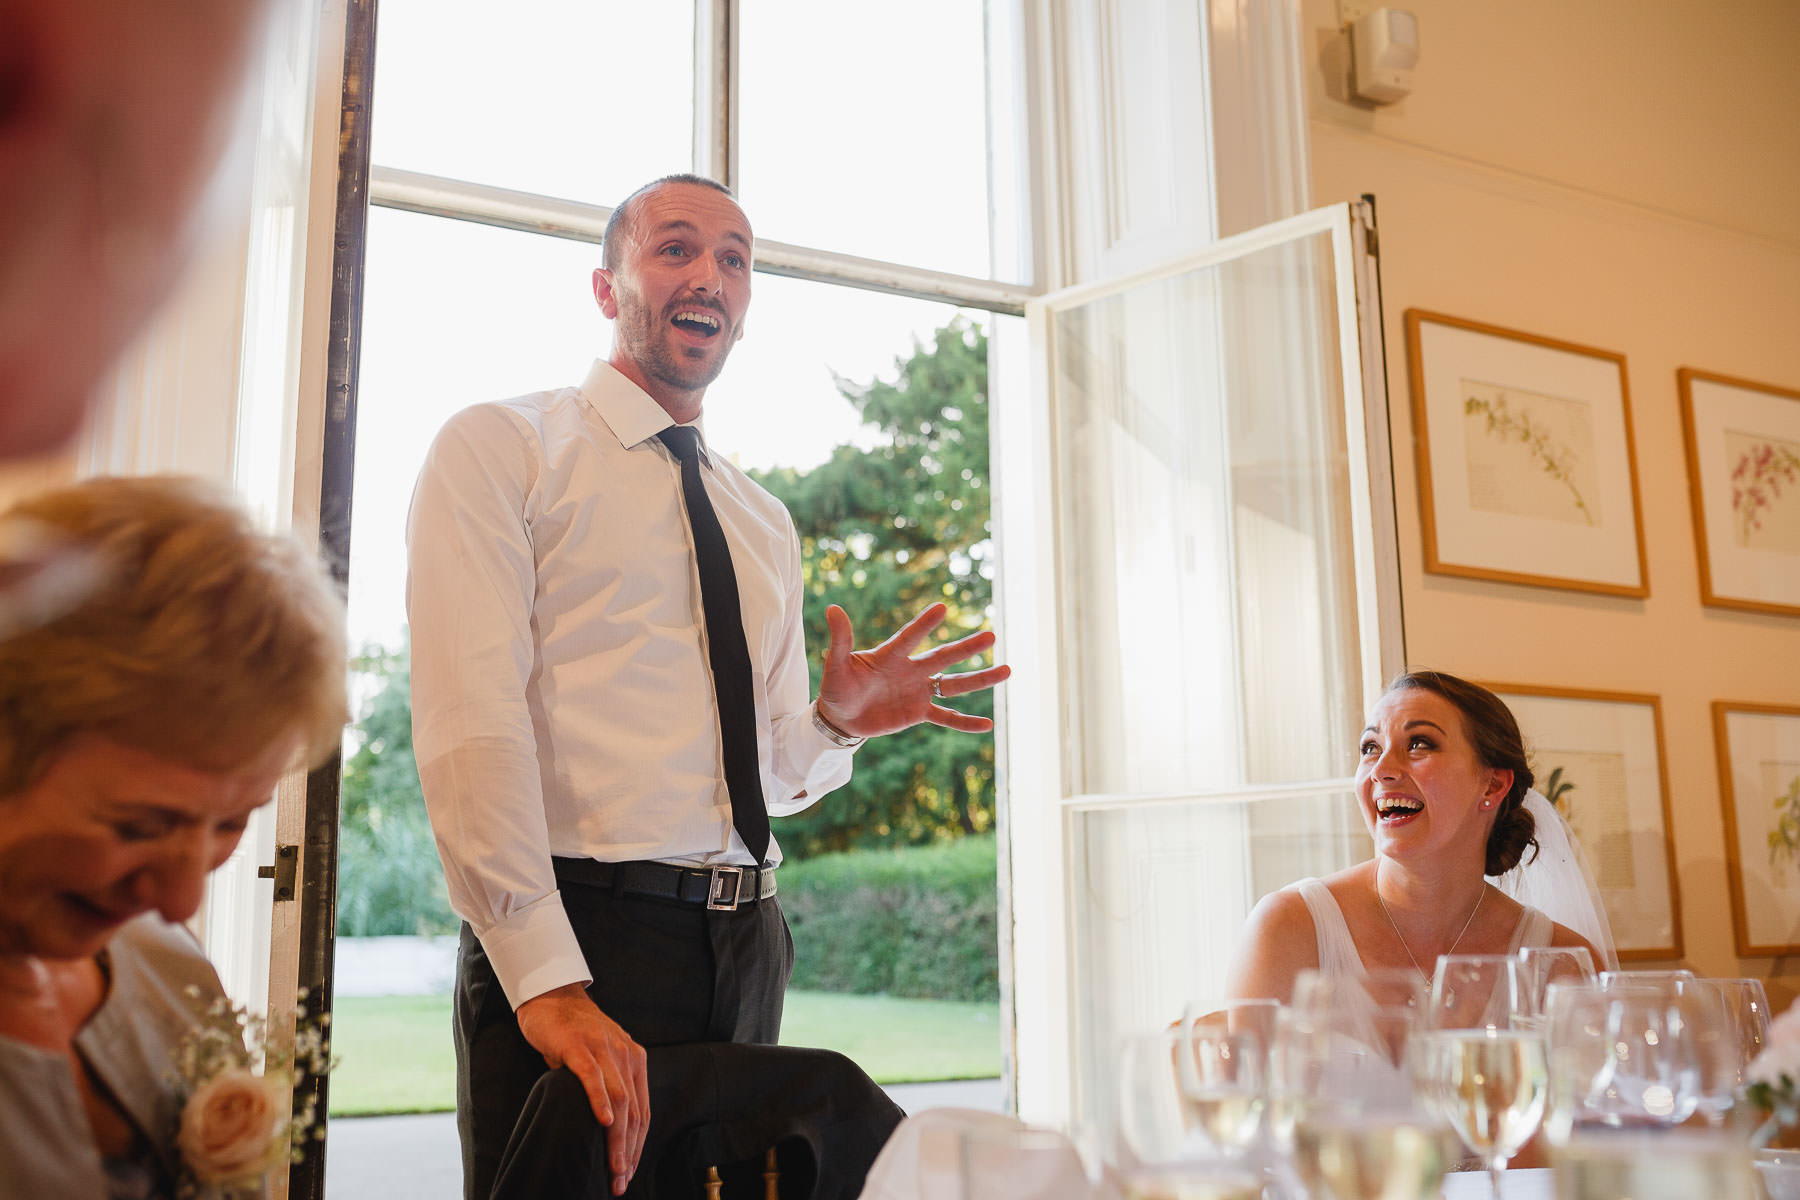 kew gardens wedding photography astra duncan52